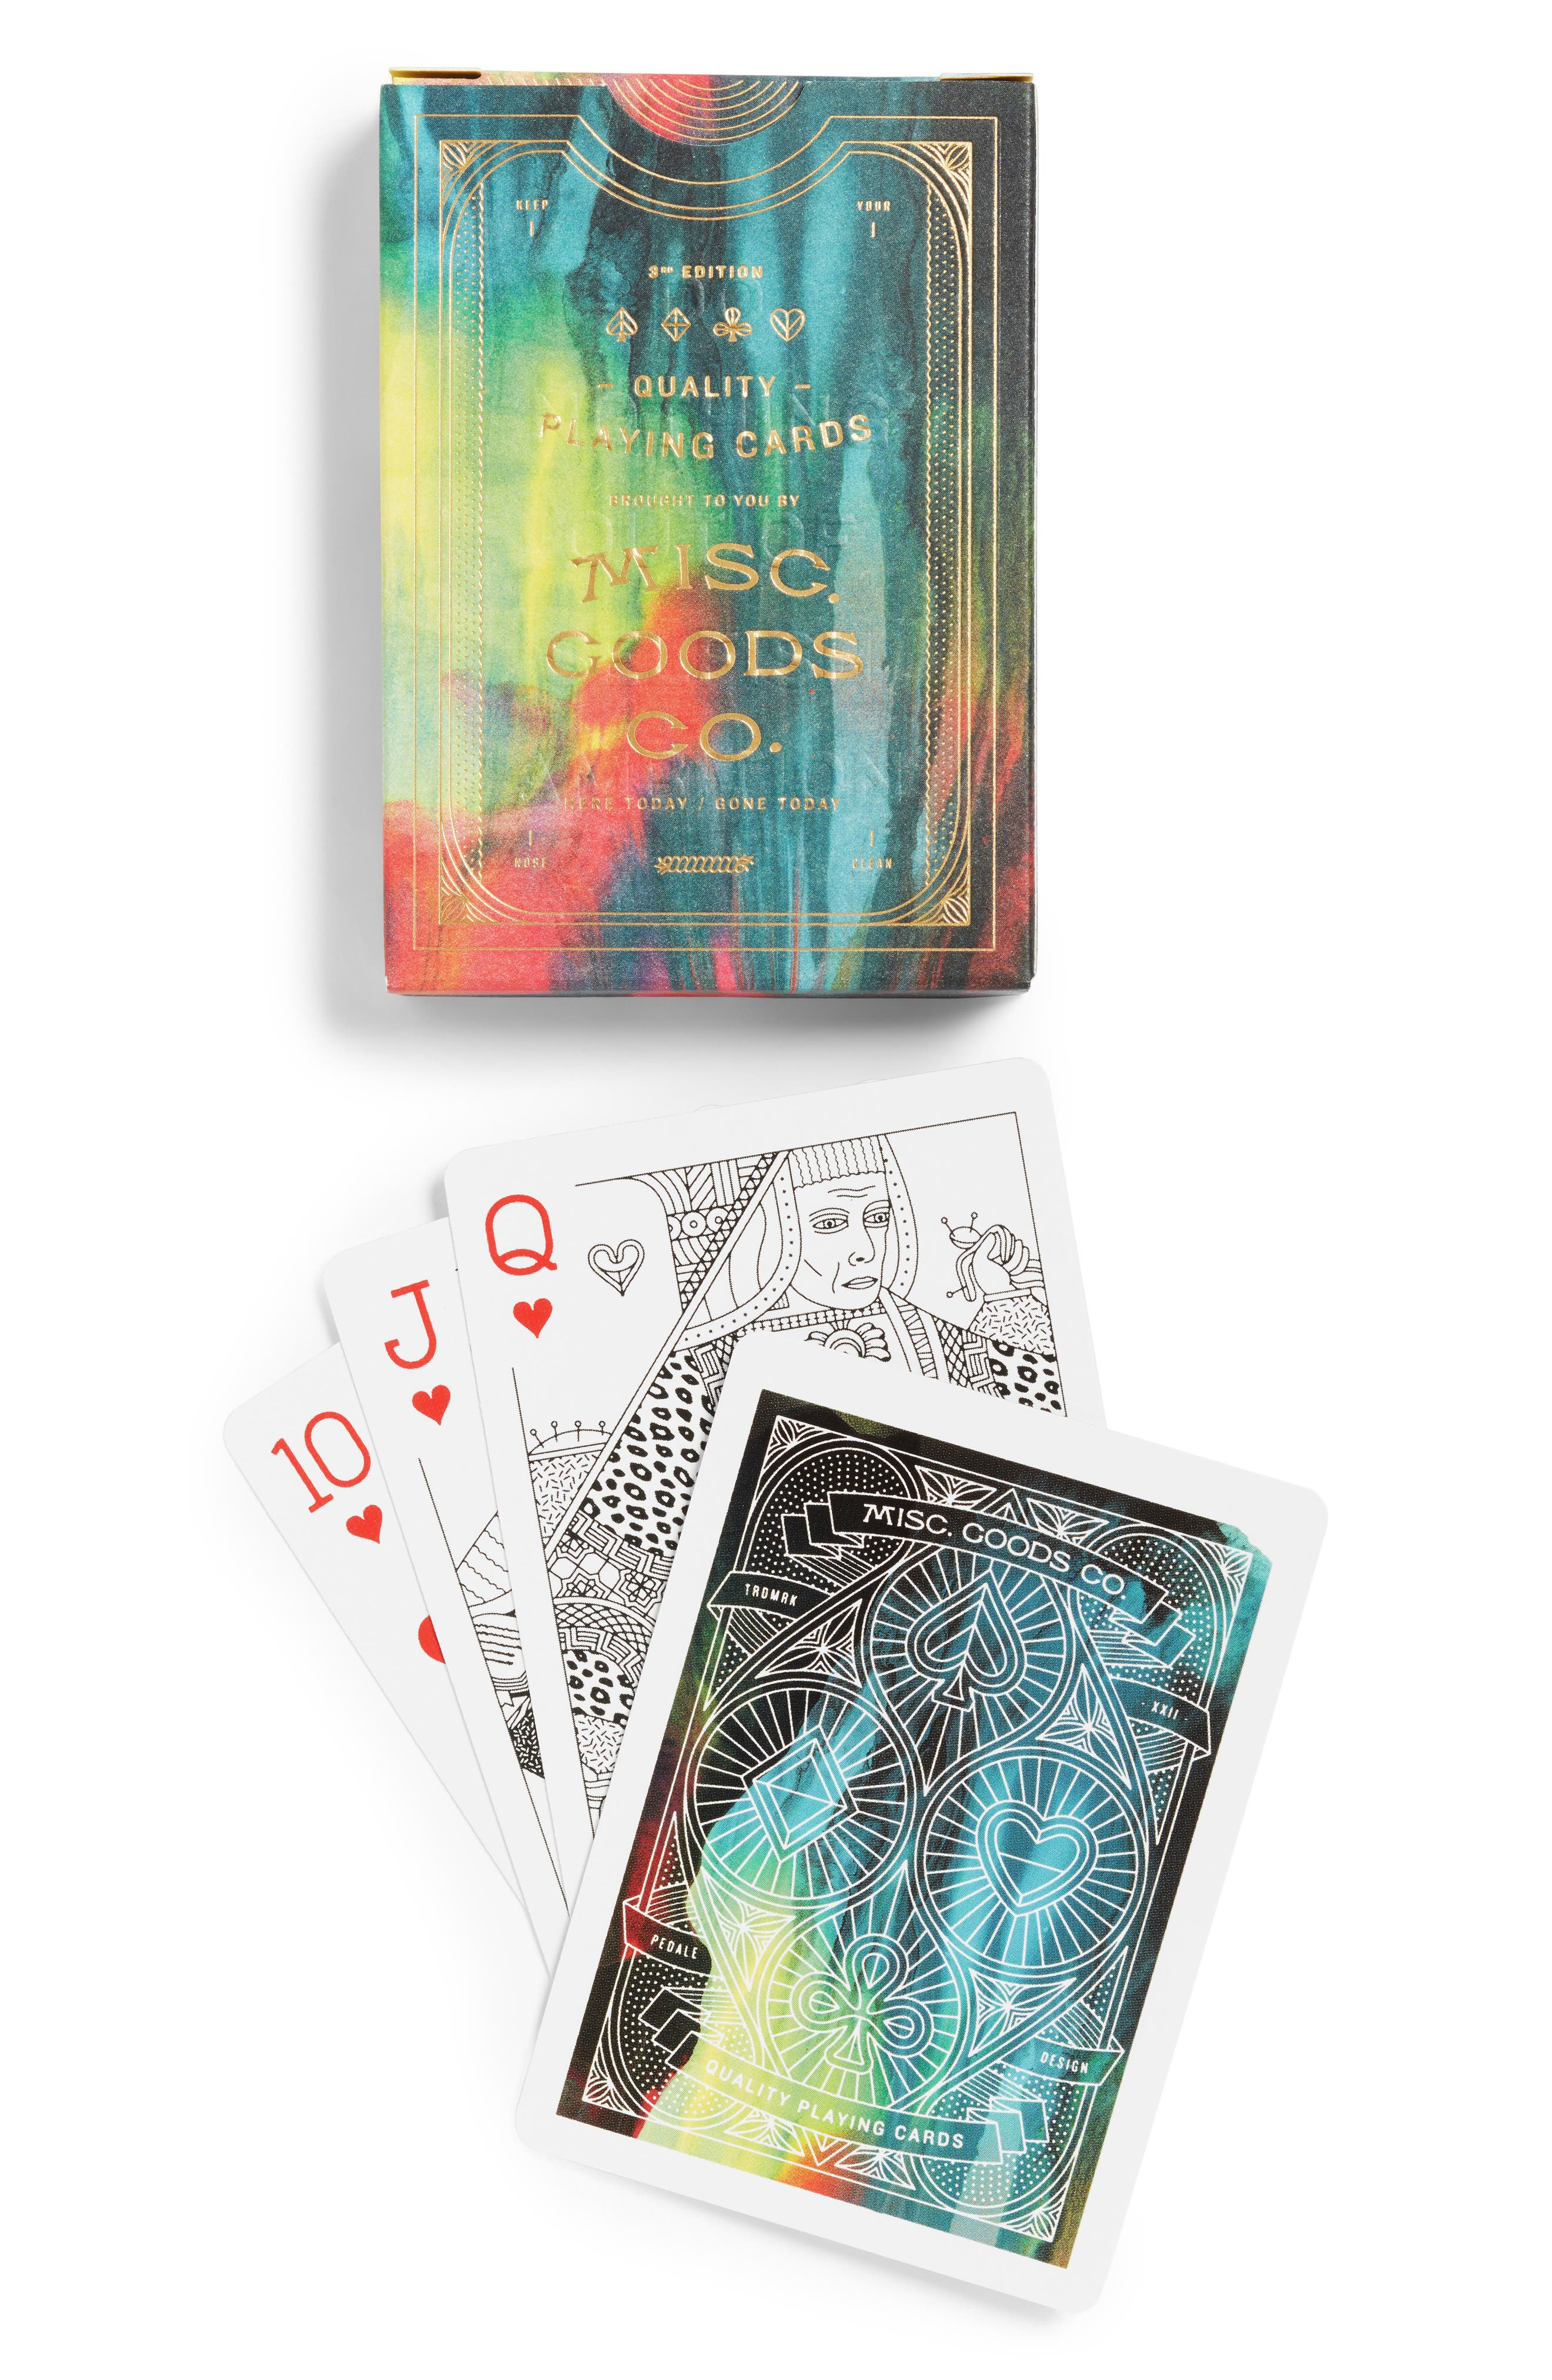 Alternate Image 1 Selected - Misc. Goods Co. Cina Playing Cards